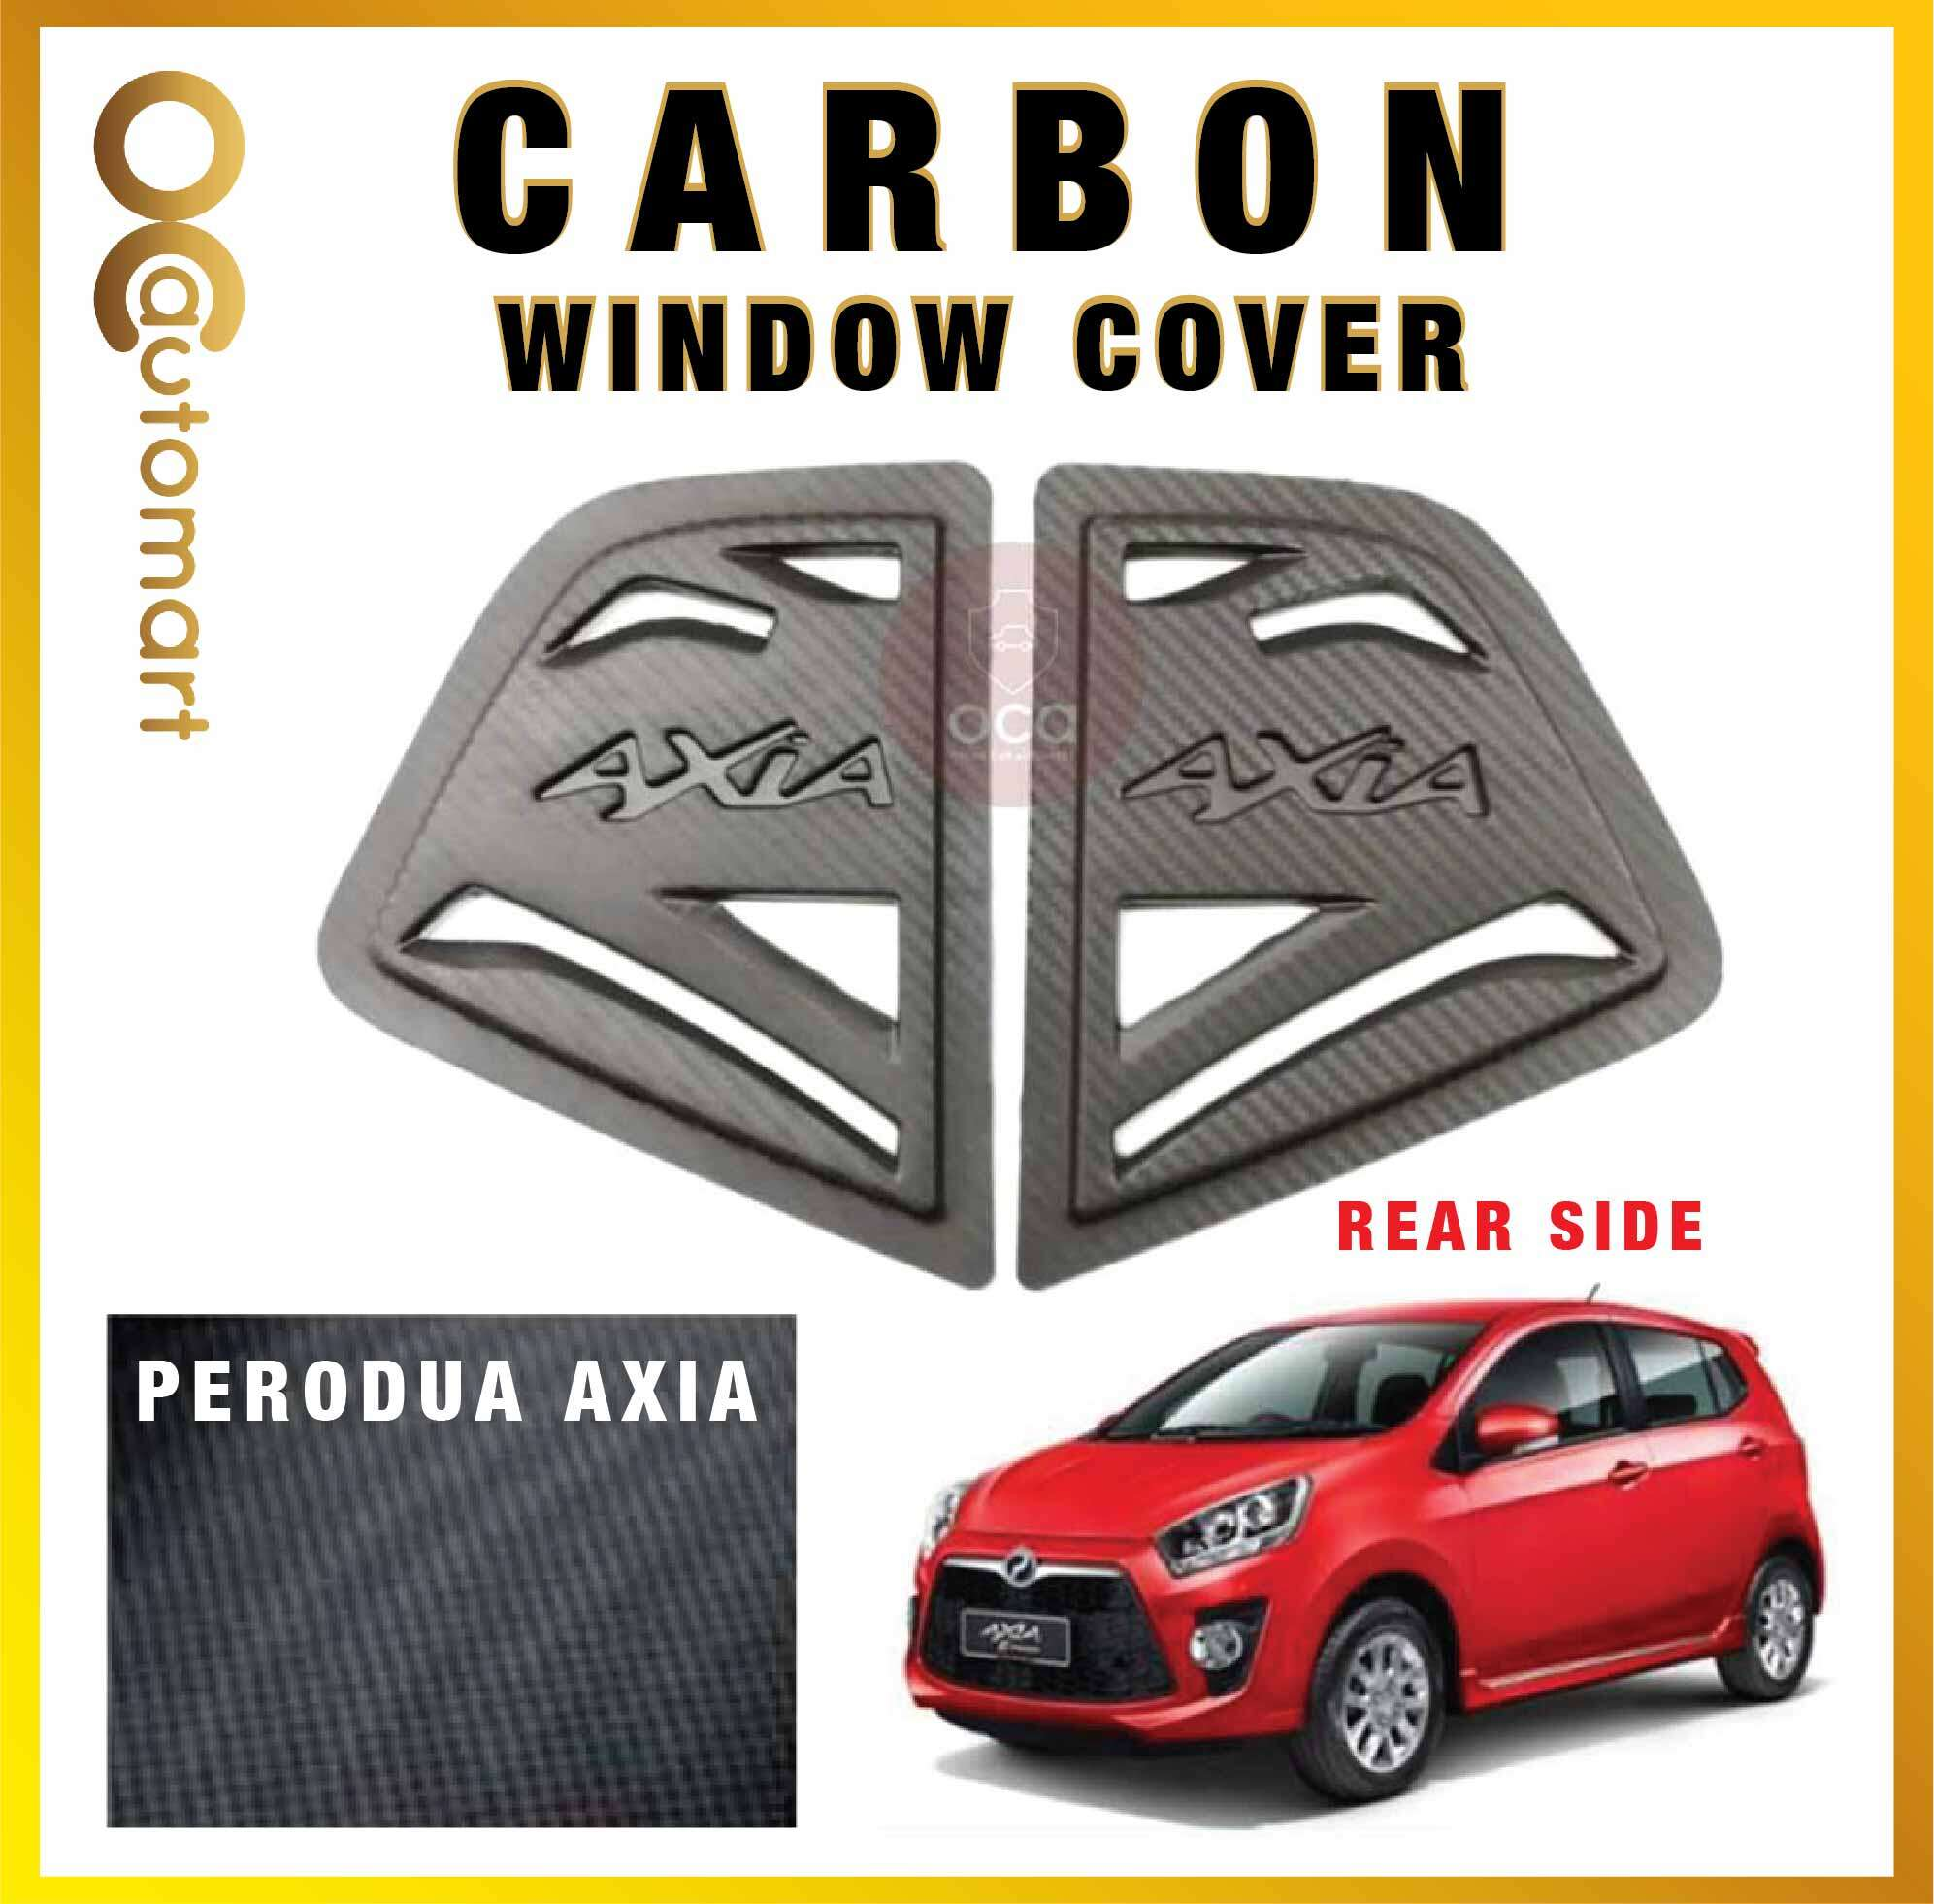 Rear Side Window Cover for Perodua Axia